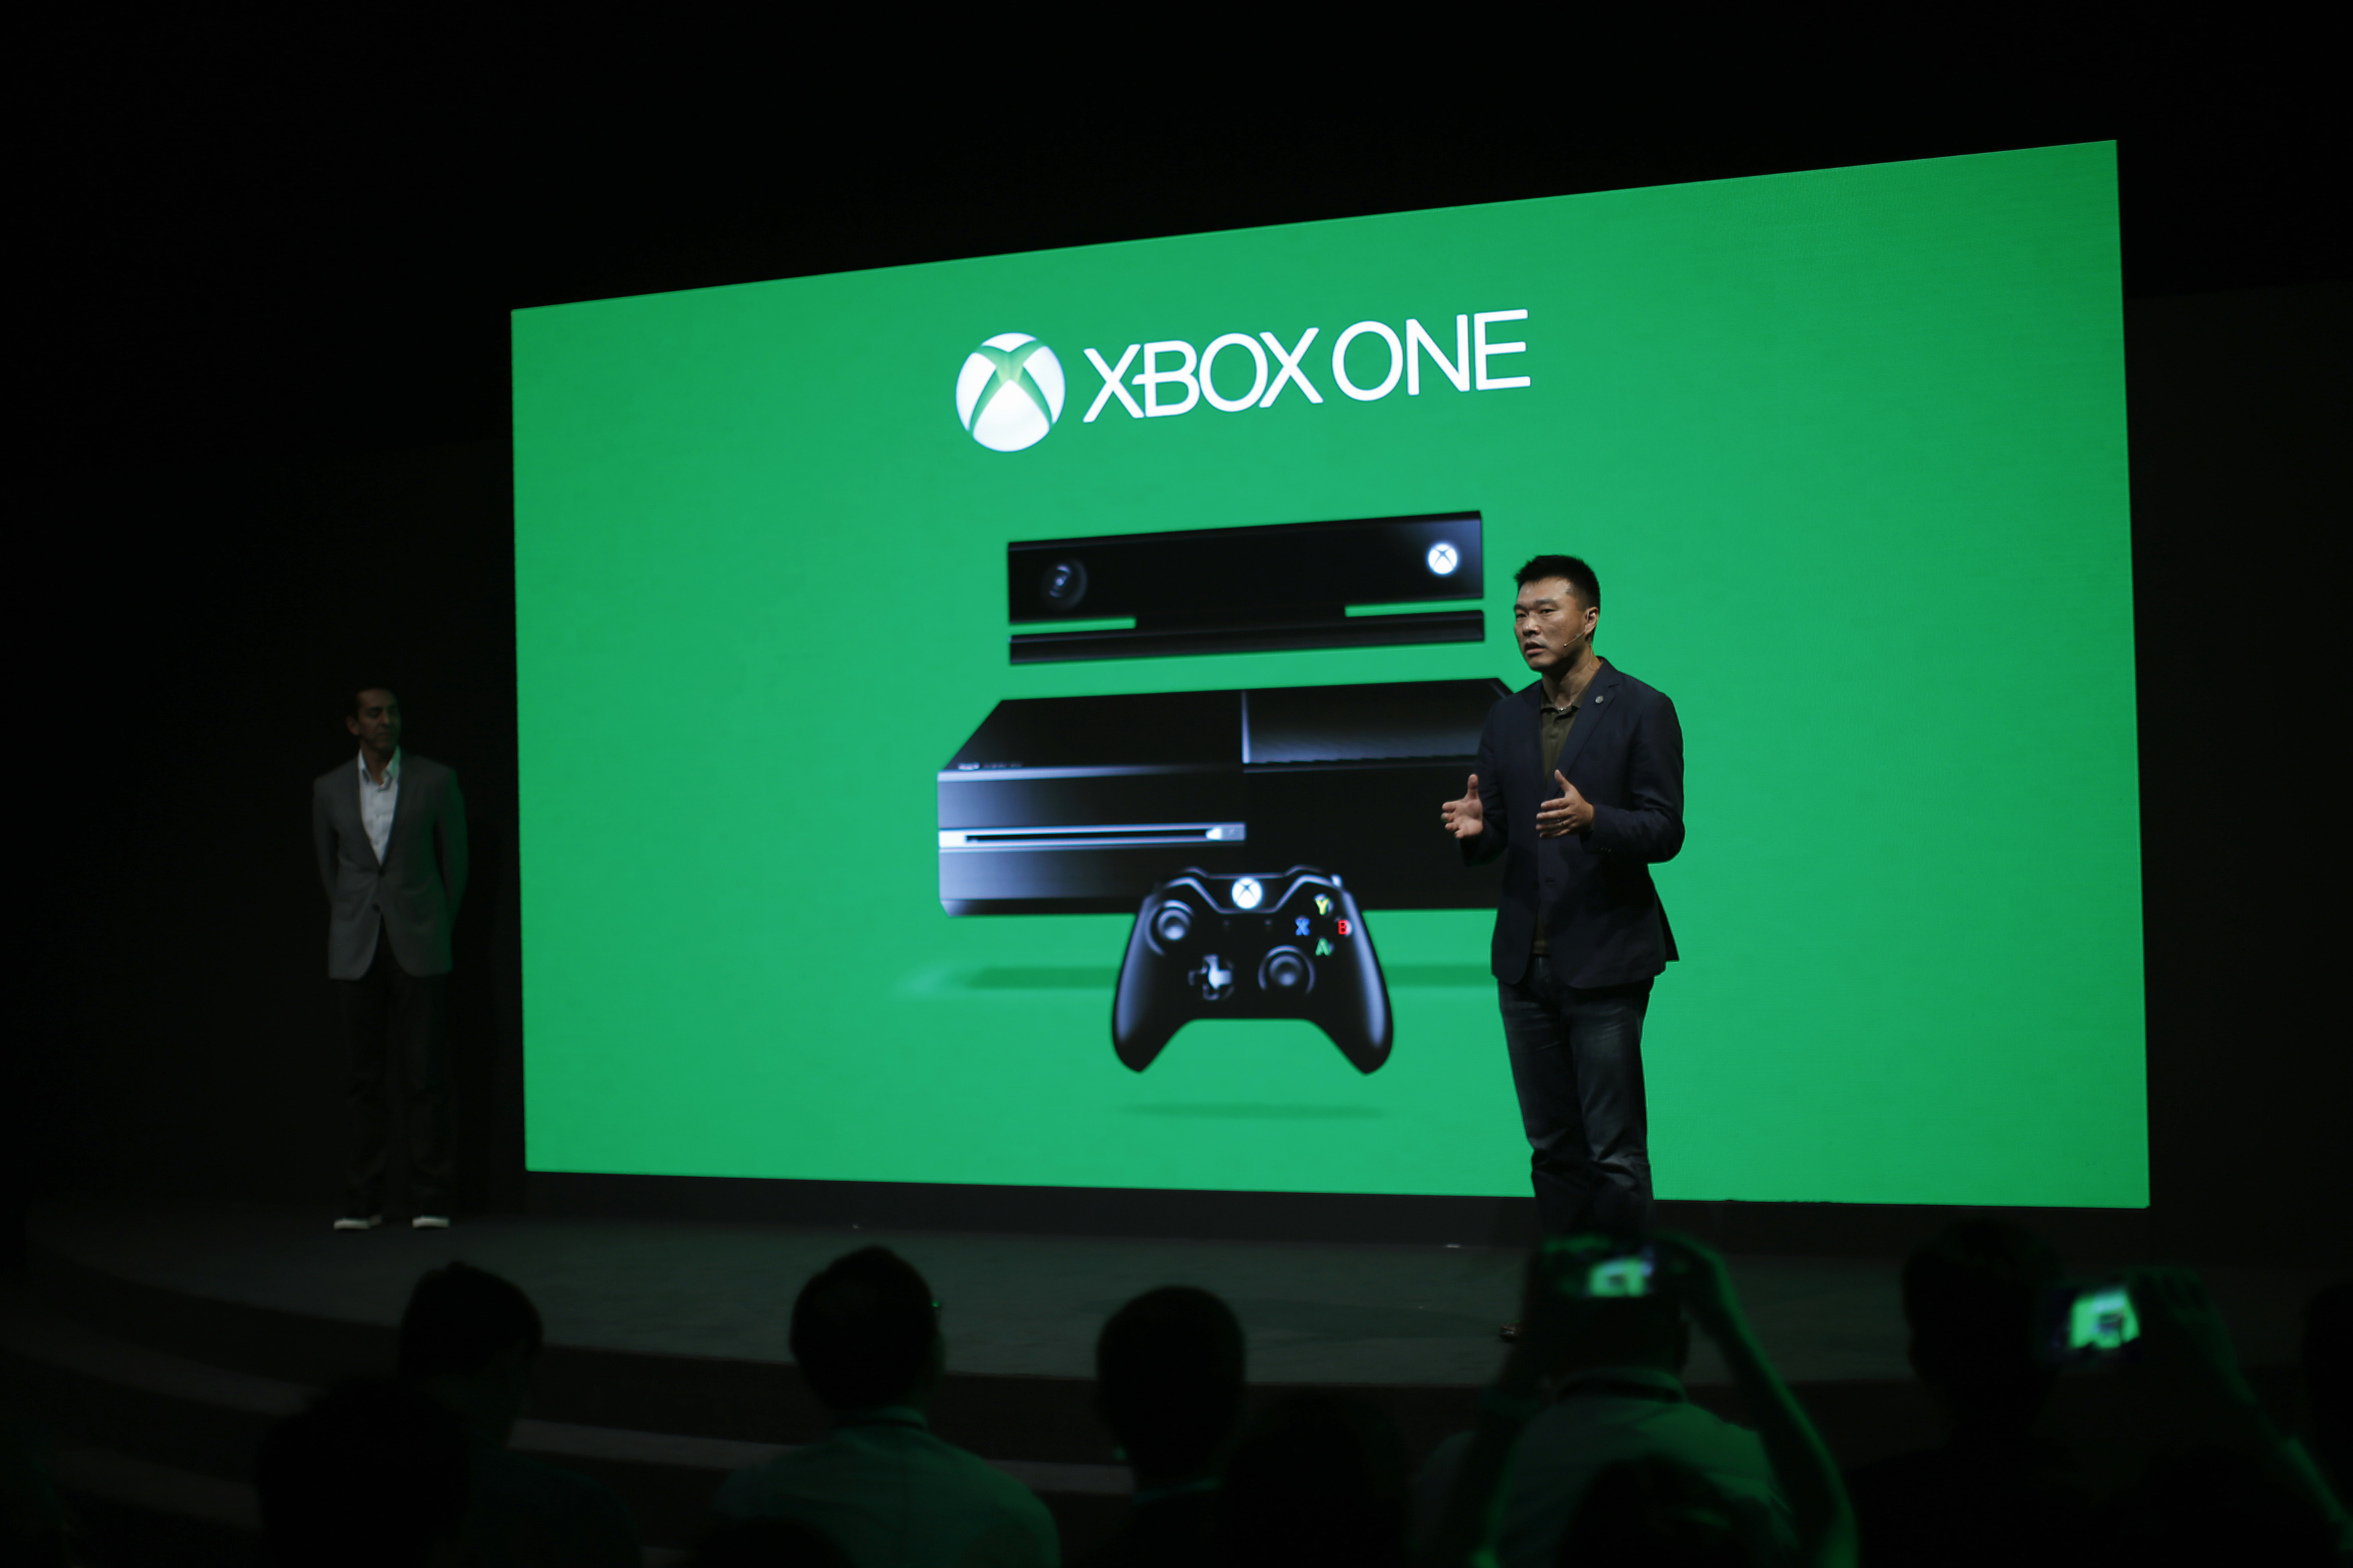 Xie Enwei, general manager of management and operations of Microsoft in China, speaks during the presentation of the Xbox One by Microsoft as part of ChinaJoy 2014 China Digital Entertainment Expo and Conference in Shanghai July 30, 2014. Microsoft Corp will launch its Xbox One gaming console in China on September 23, making it the first foreign company to start selling consoles in the world's third biggest gaming market after a ban on the devices was lifted this year. Microsoft is forging ahead with the console launch despite Tuesday's government announcement that the U.S. software giant is the subject of an anti-monopoly investigation. REUTERS/Carlos Barria (CHINA - Tags: BUSINESS SCIENCE TECHNOLOGY)